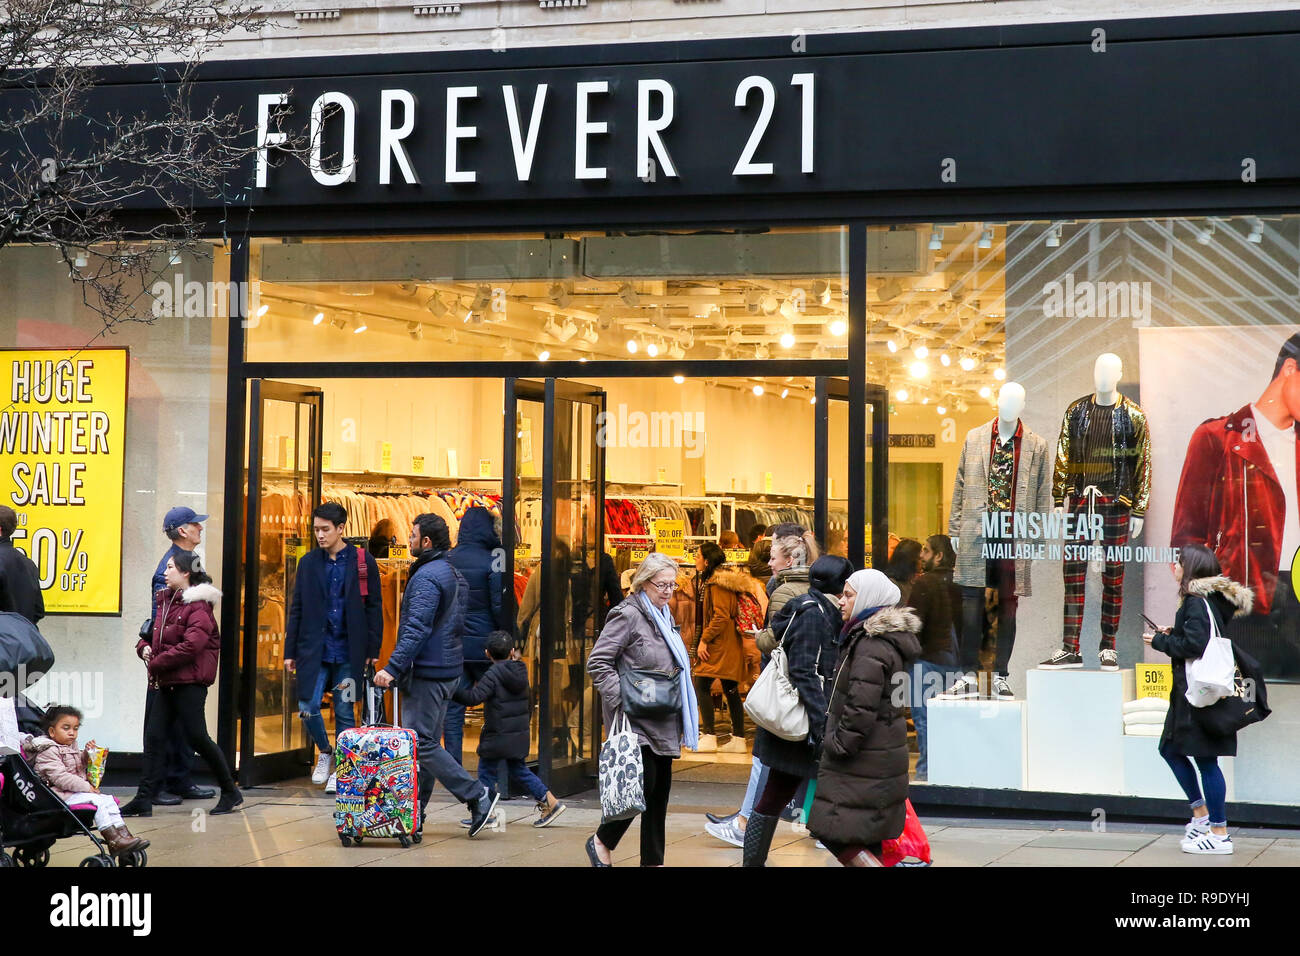 398ef339ffd0 Forever 21 London Immagini   Forever 21 London Fotos Stock - Alamy